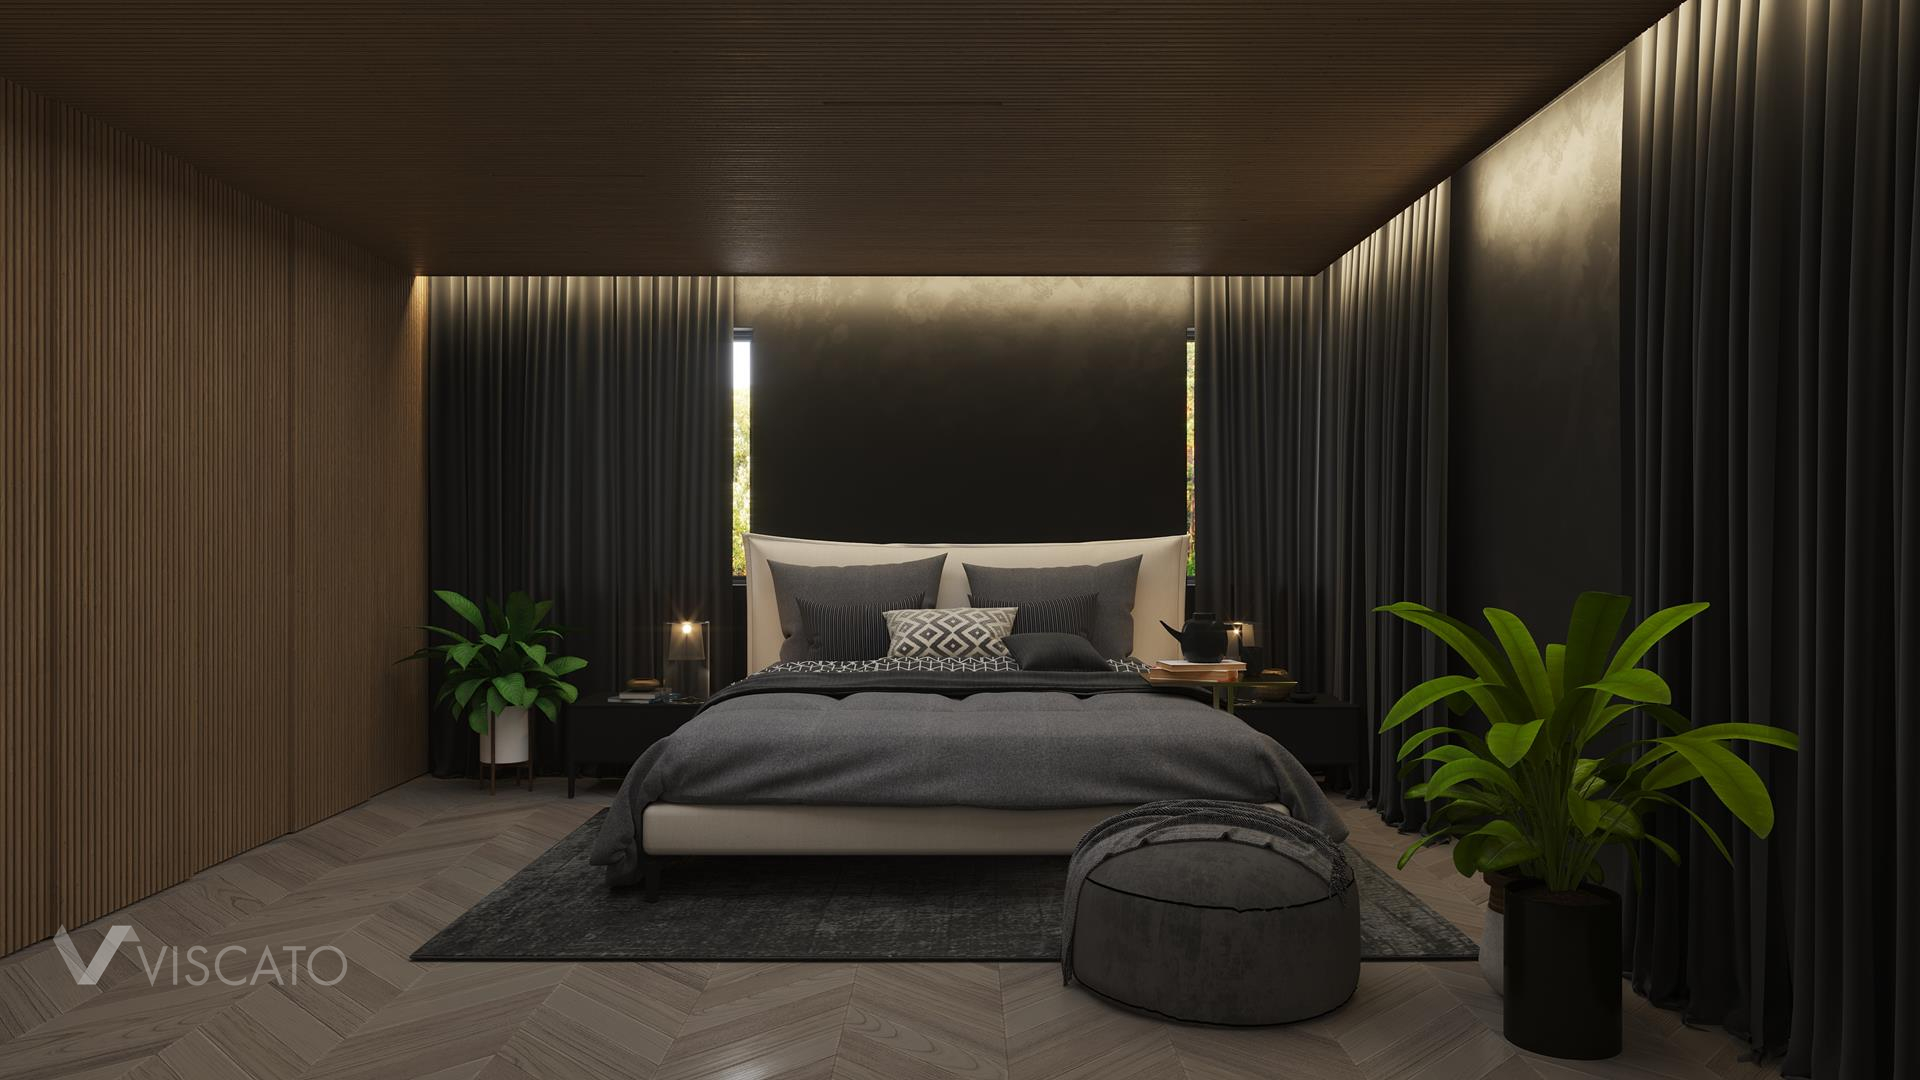 Bedroom in dark shades, 3D Visualization